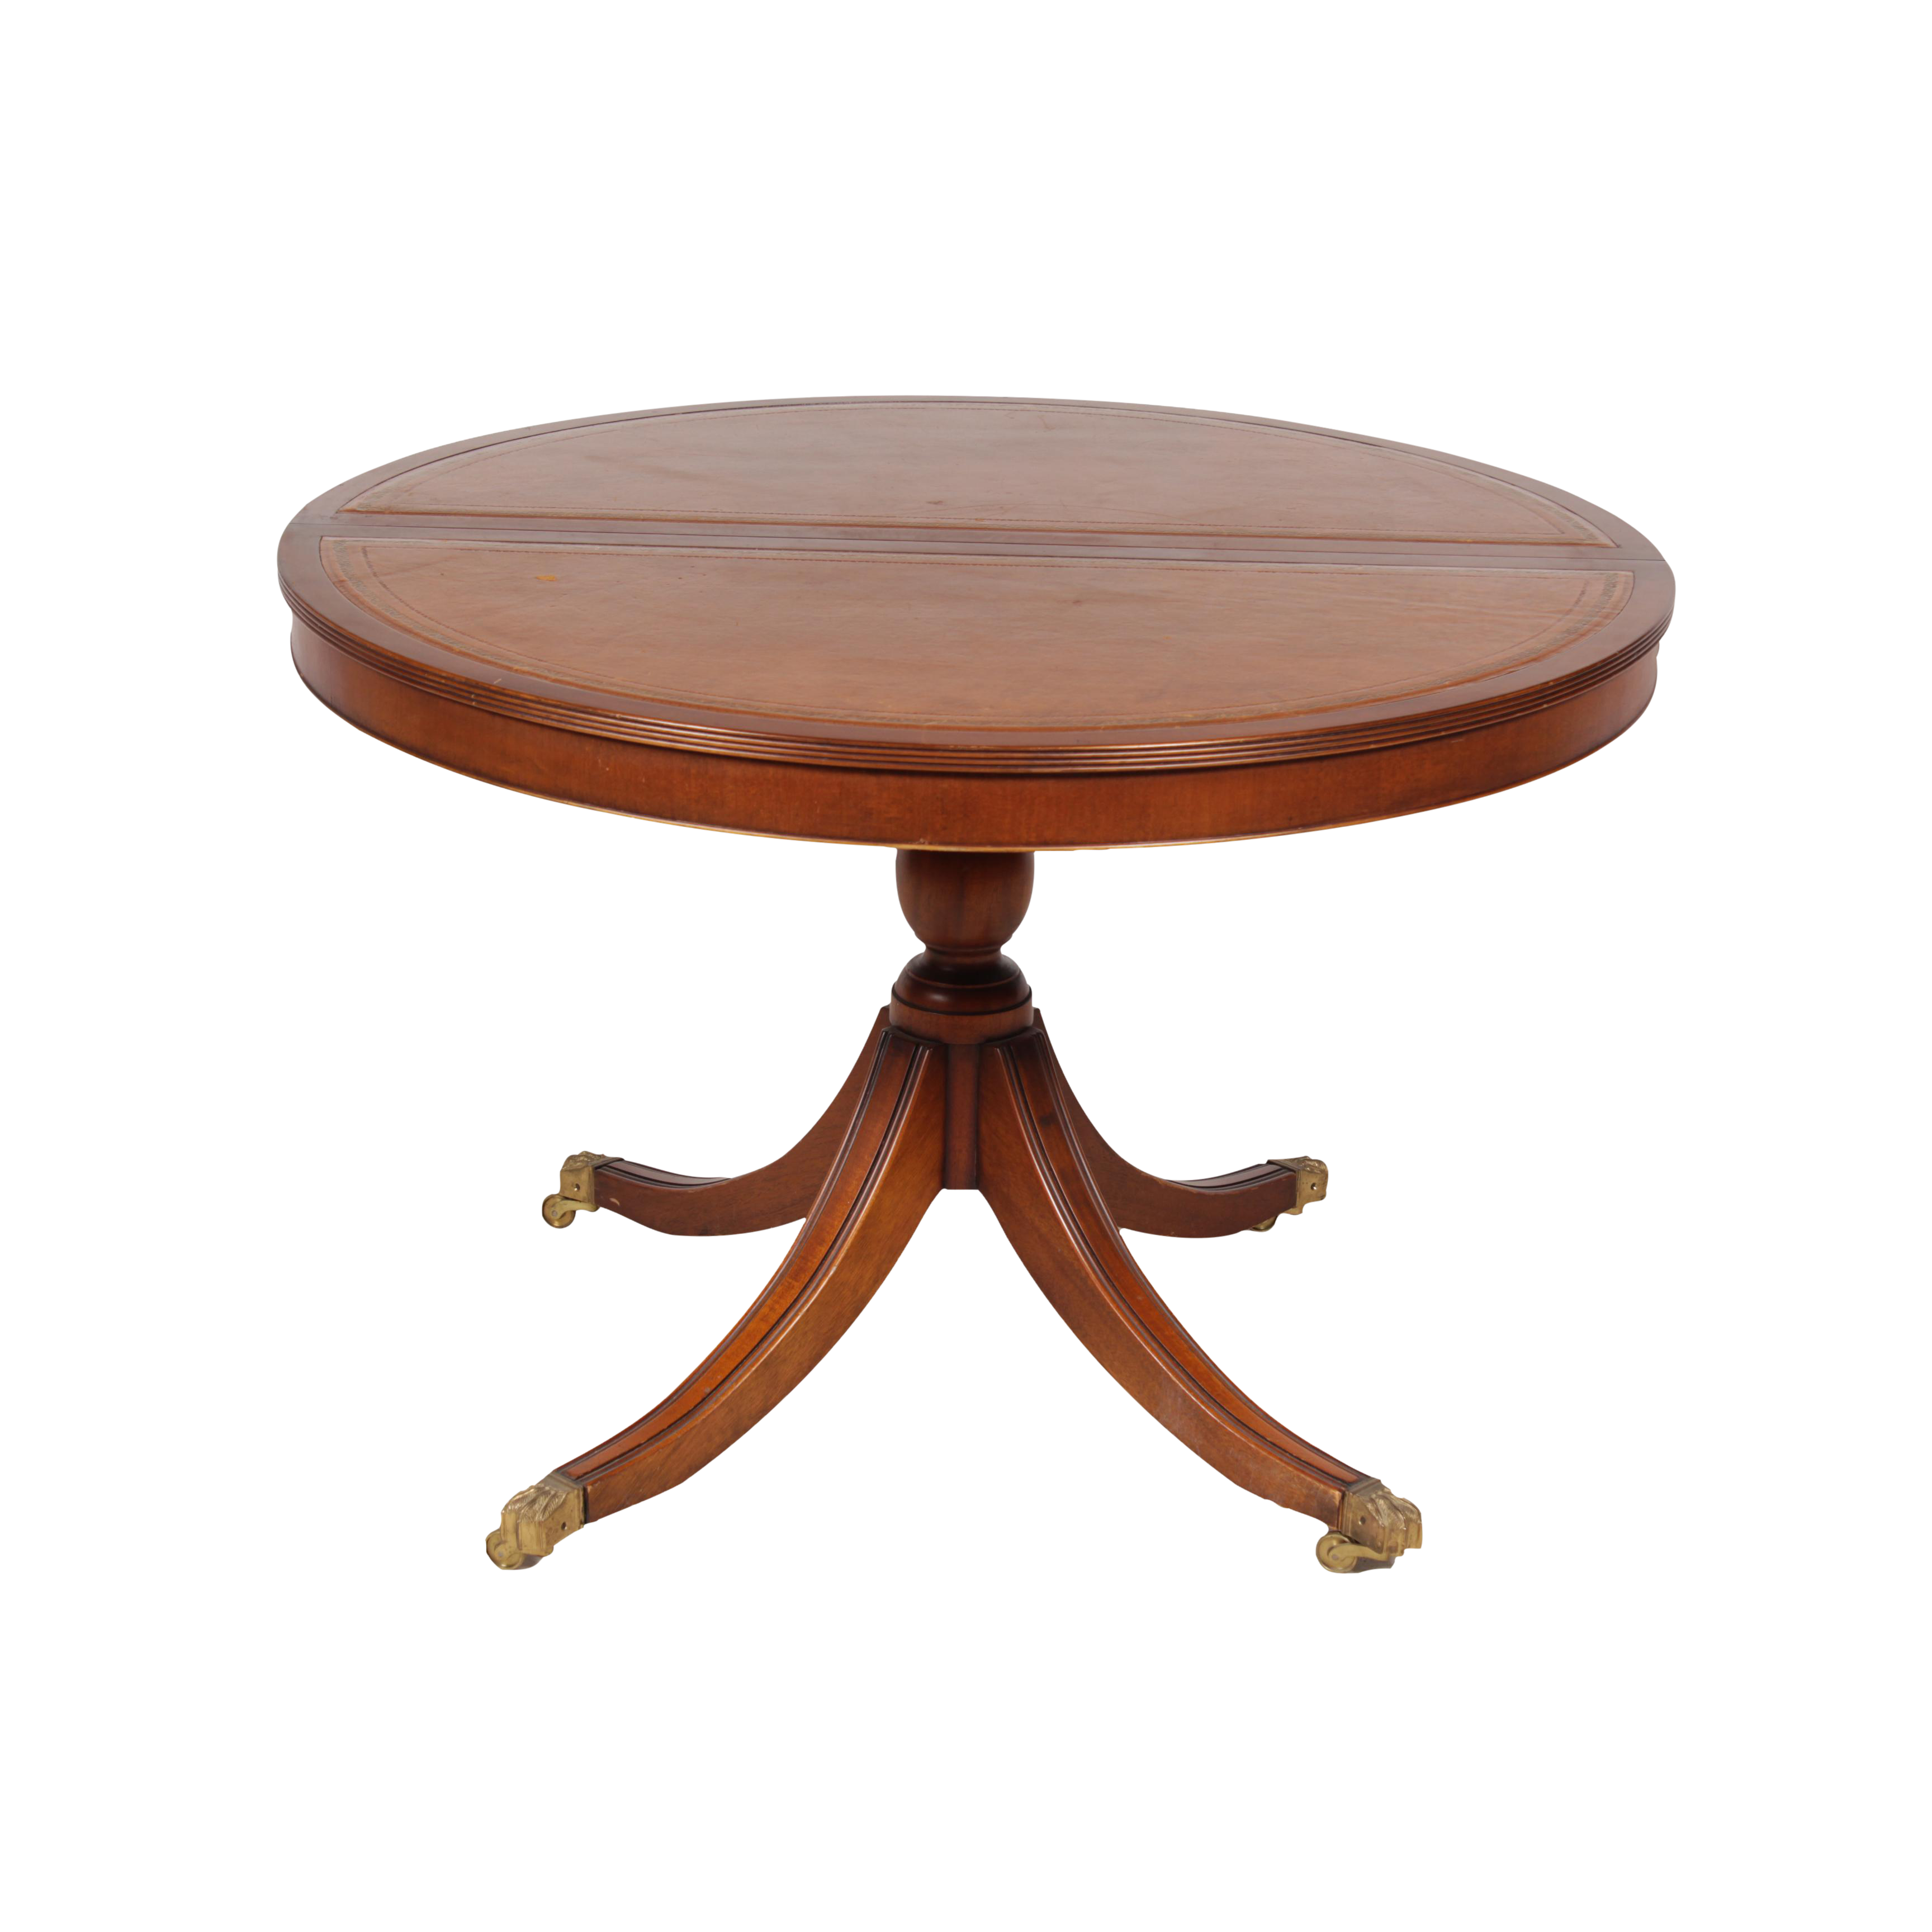 Duncan Storage Coffee Table: Duncan Phyfe Neoclassical Style Table